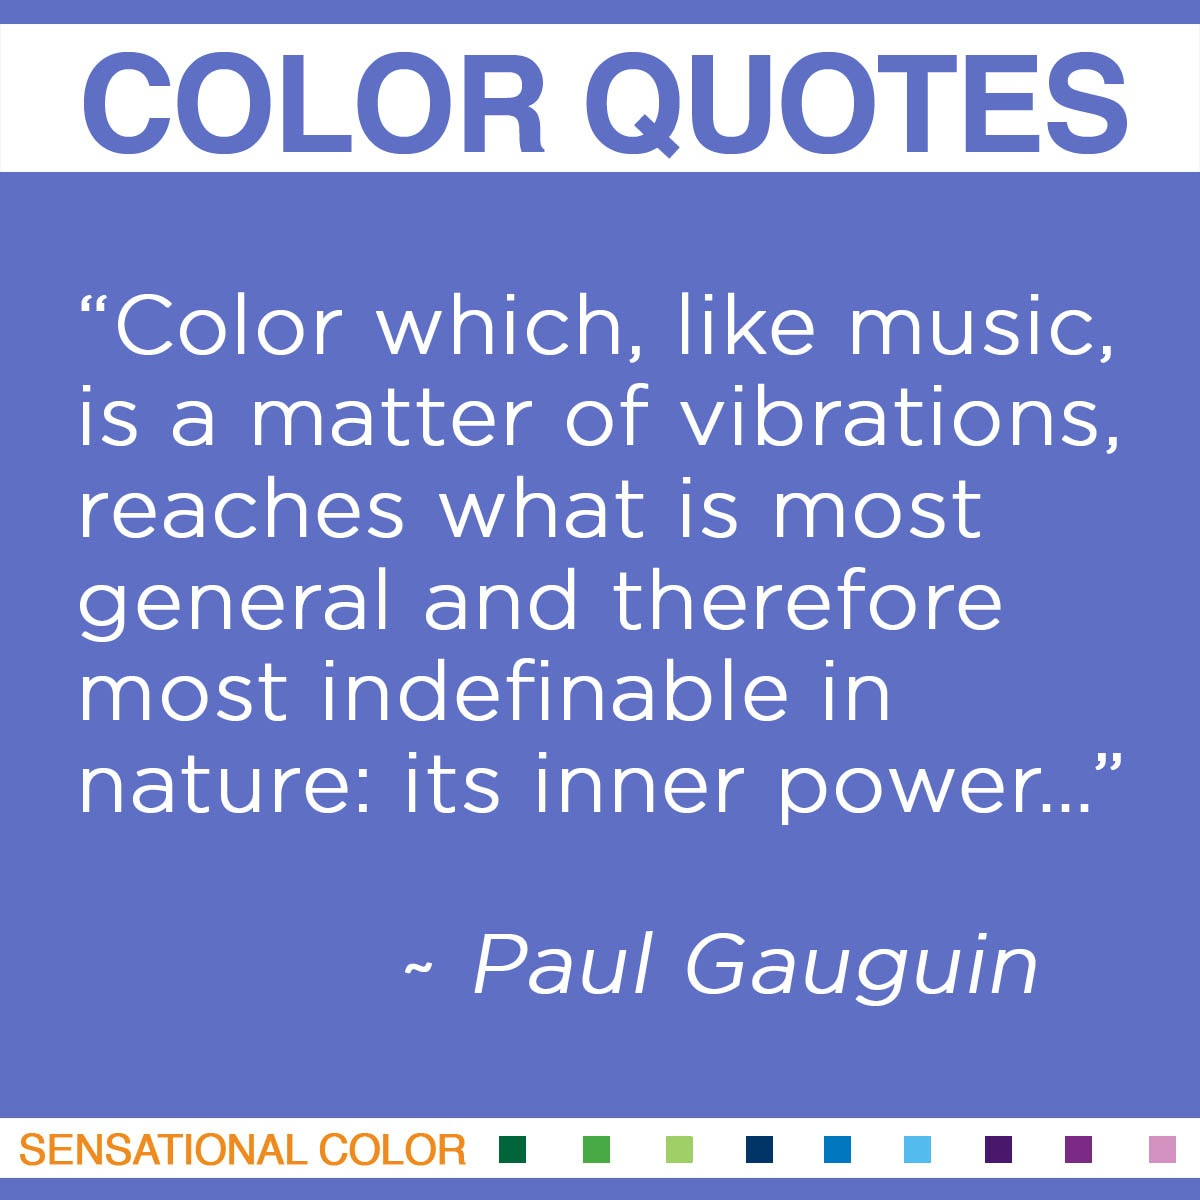 """Color which, like music, is a matter of vibrations, reaches what is most general and therefore most indefinable in nature: its inner power.""  - Paul Gauguin"